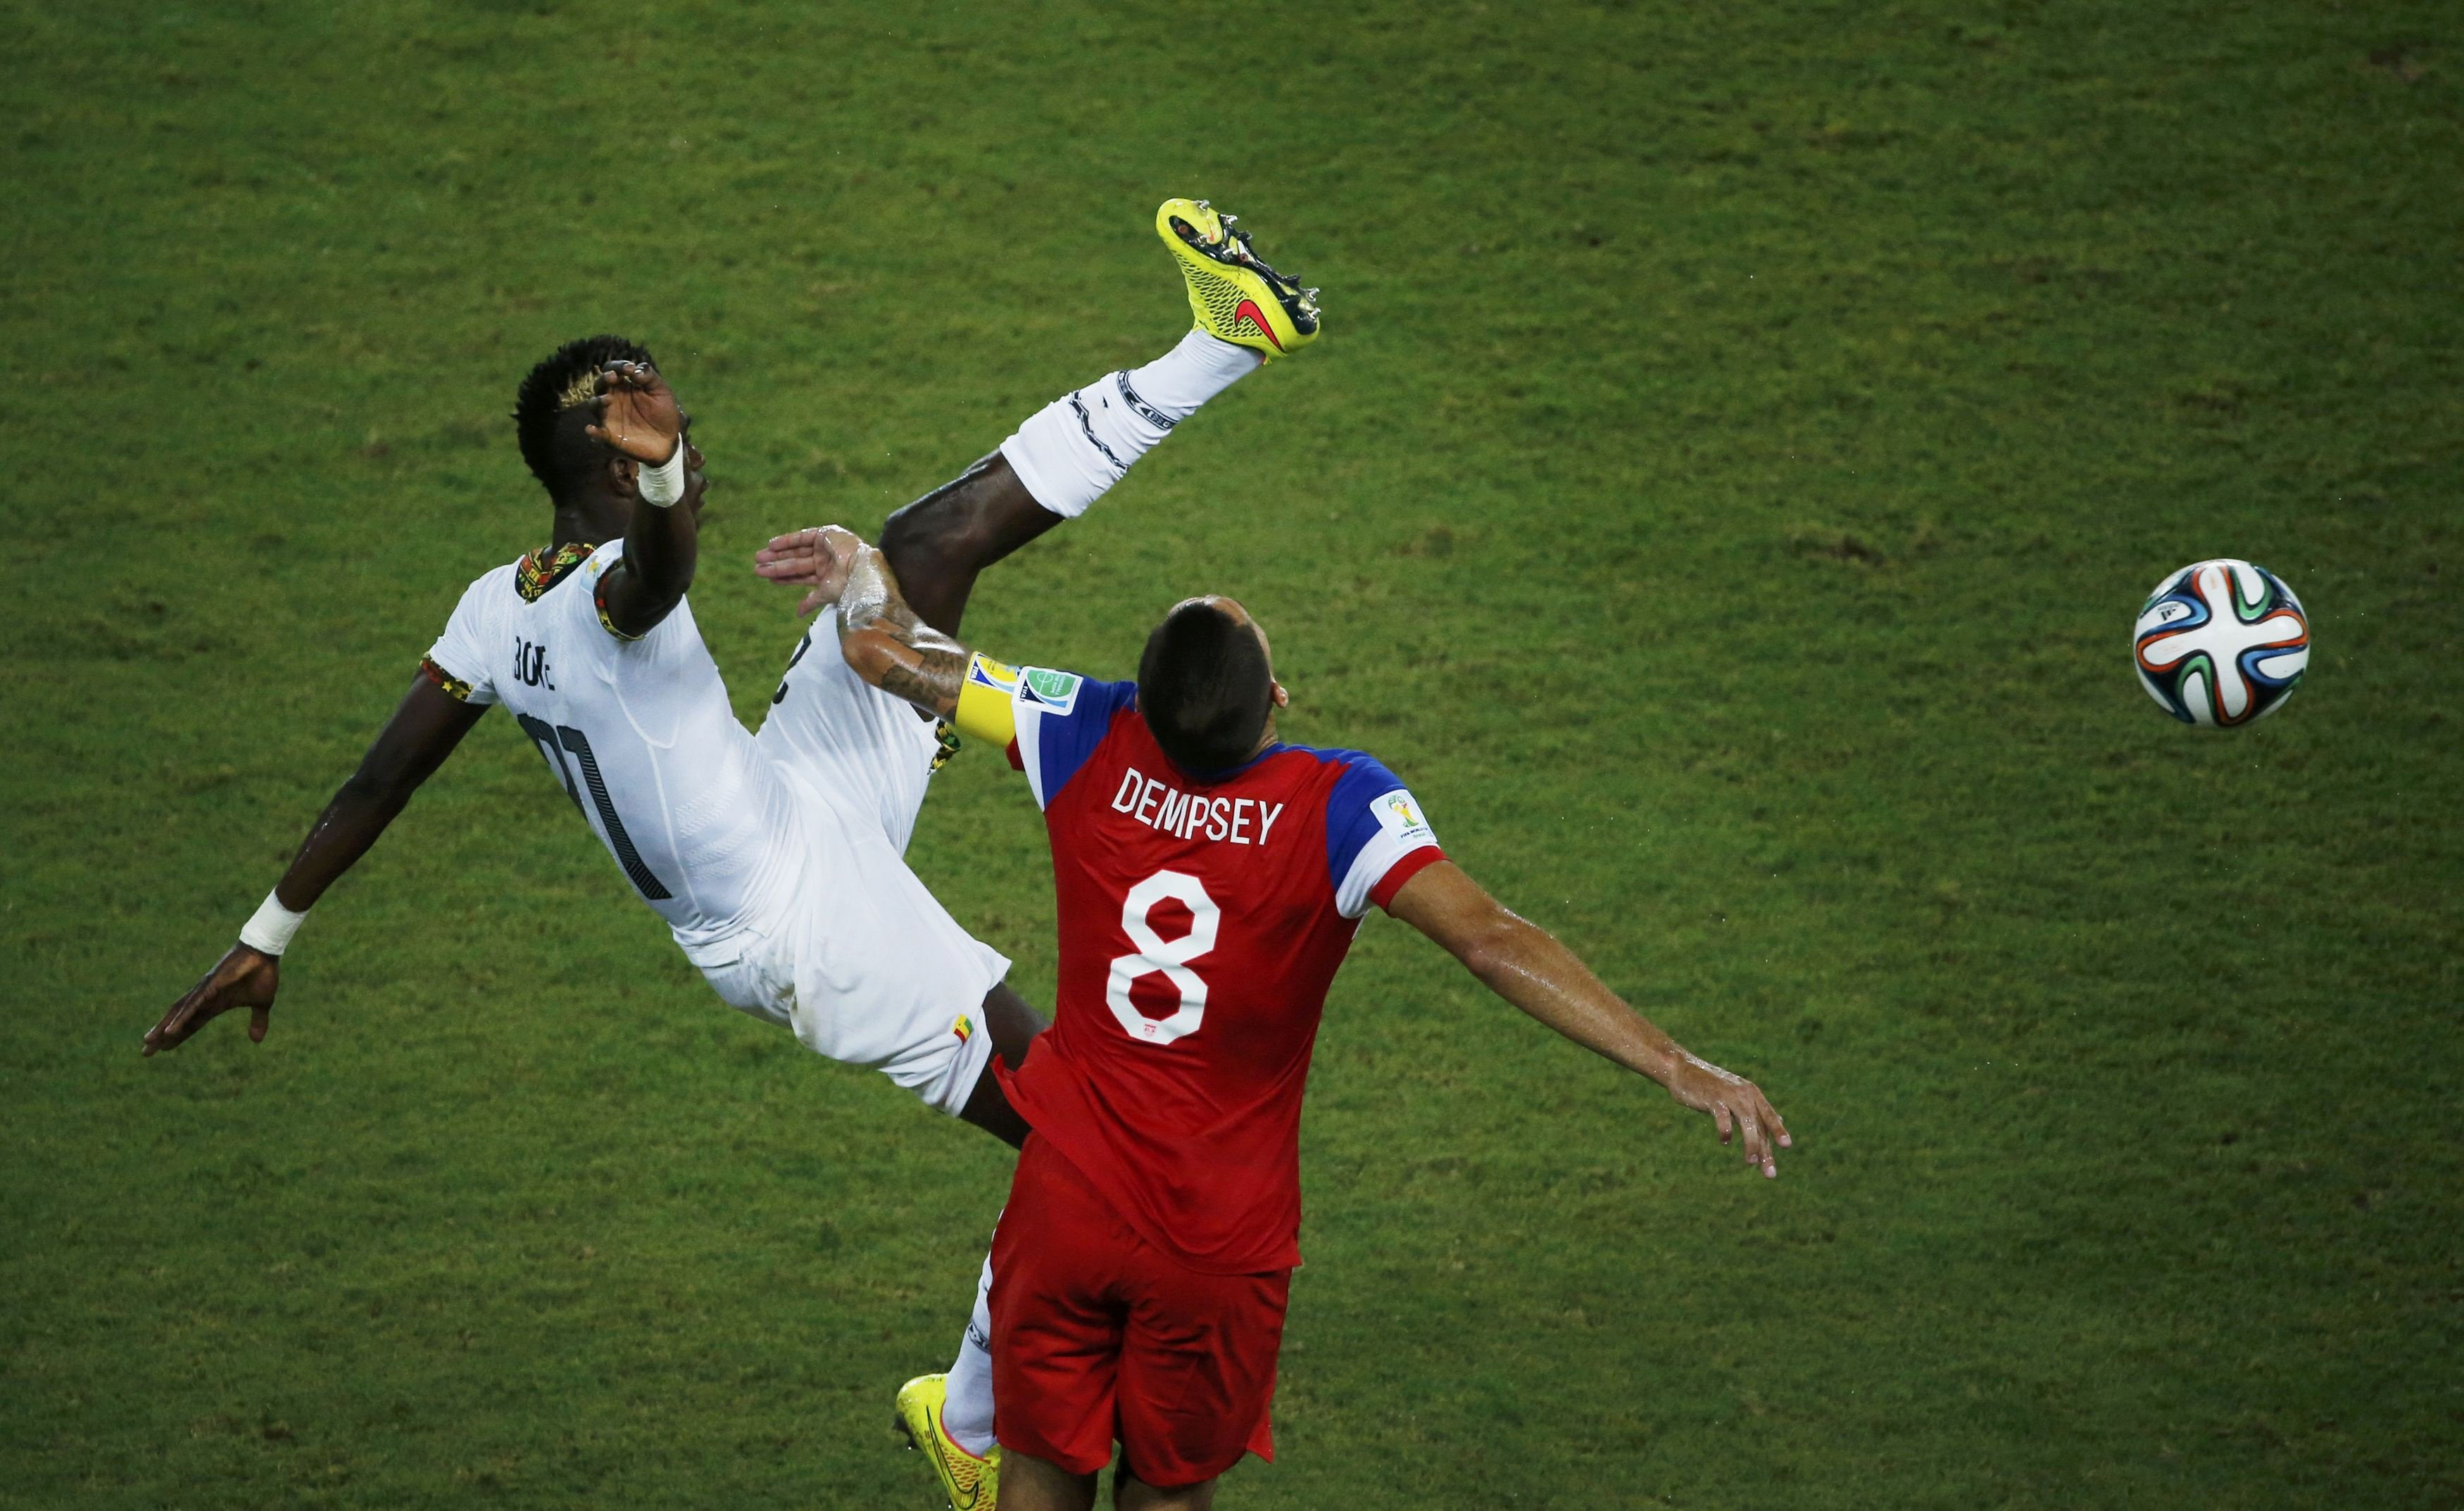 Ghana's John Boye (kicks high and knocks into the face of Clint Dempsey of the U.S. during their 2014 World Cup Group G soccer match at the Dunas arena in Natal, Brazil on June 16, 2014.